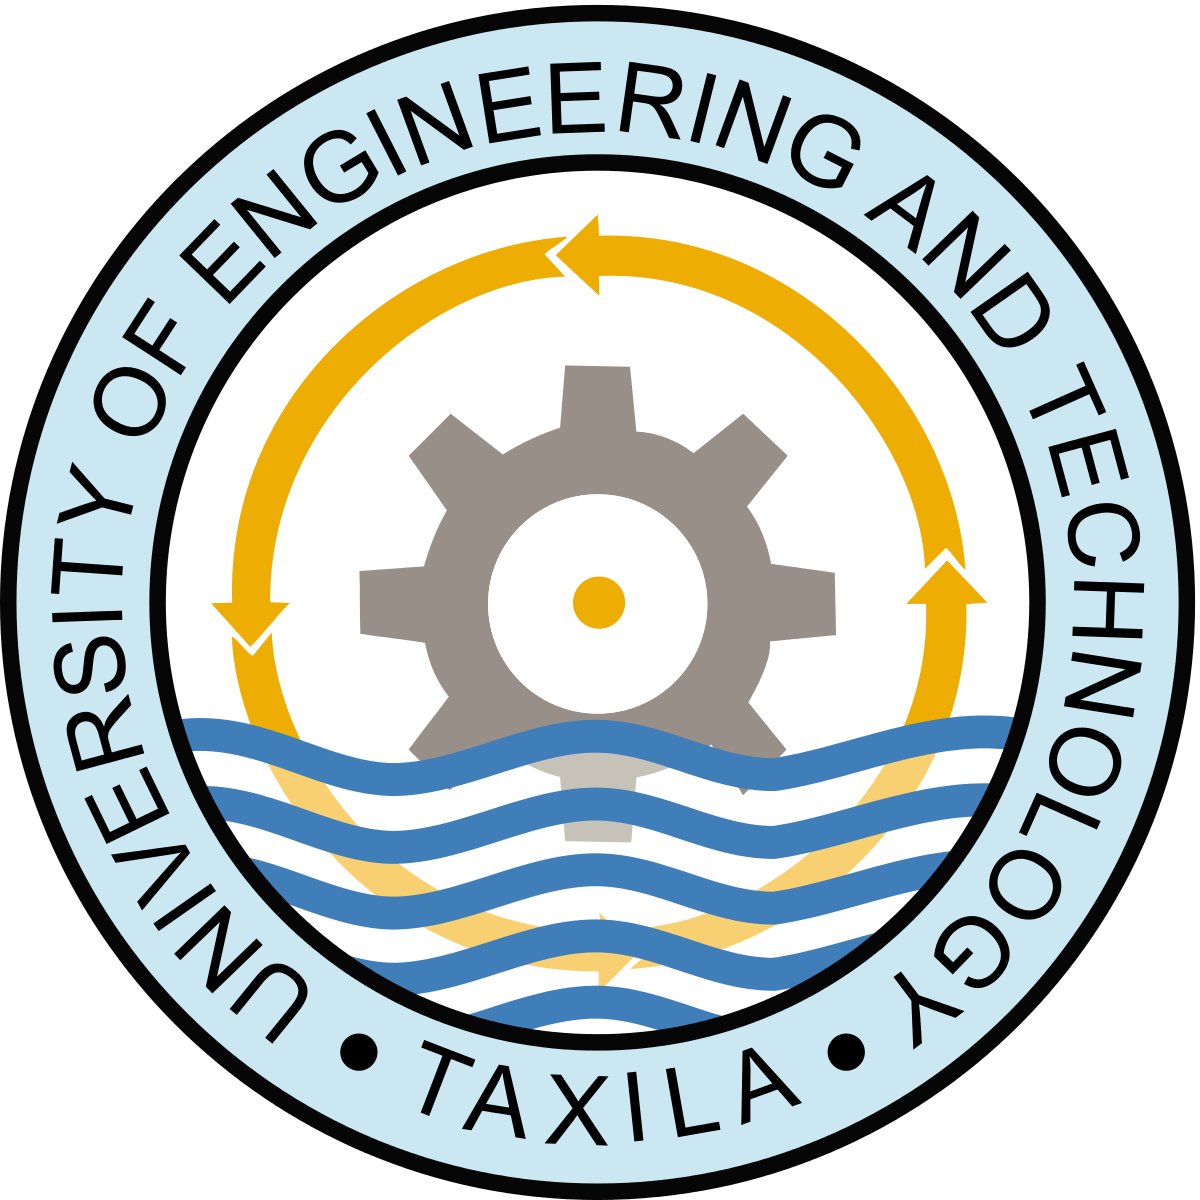 University of and technology. Industry clipart mechanical engineering